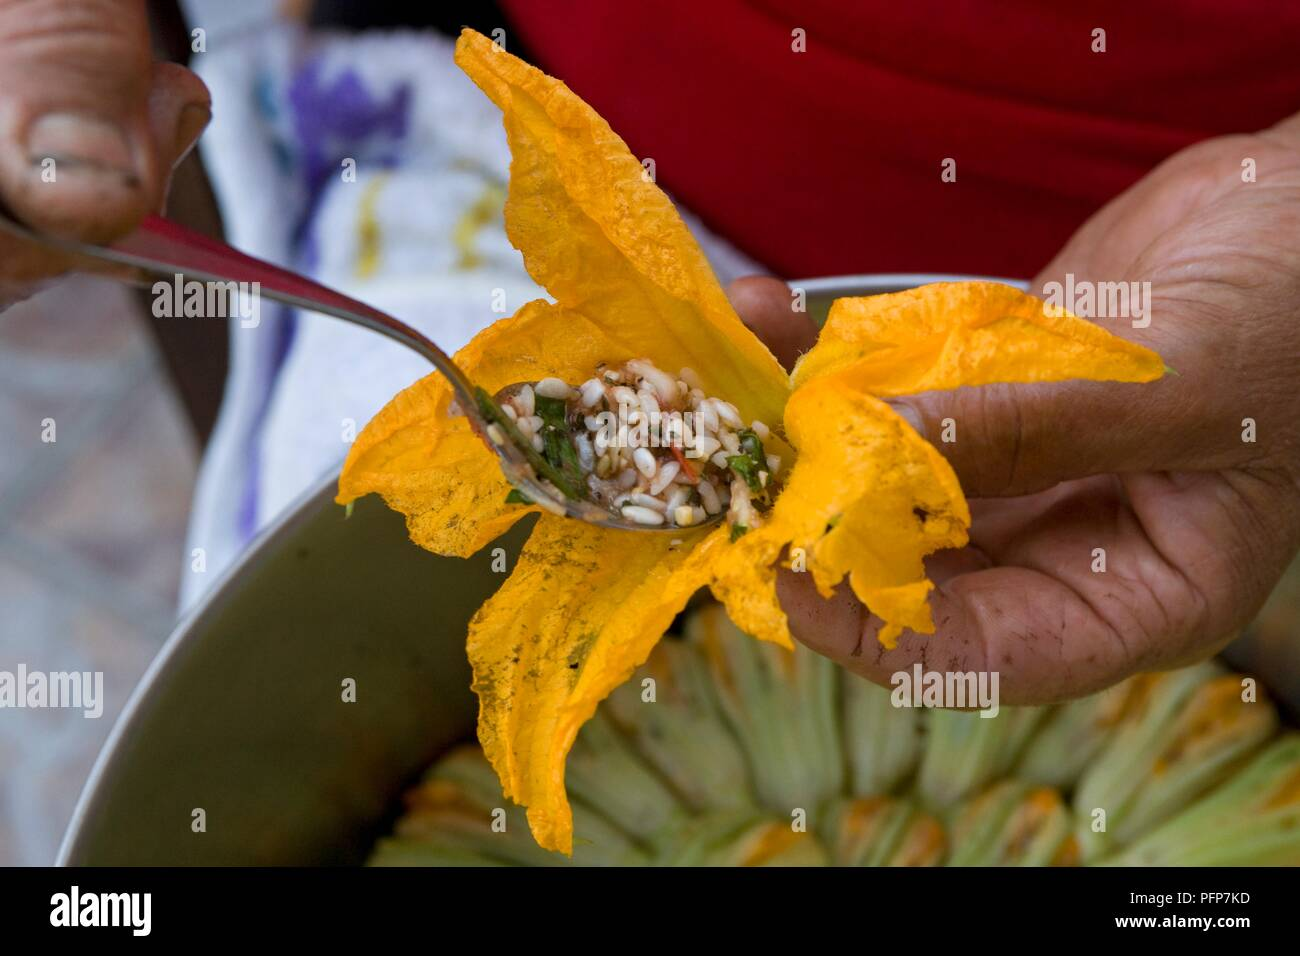 Greece, Dodecanese, Karpathos island, Finiki, using spoon to place rice stuffing in courgette flower, close-up Stock Photo